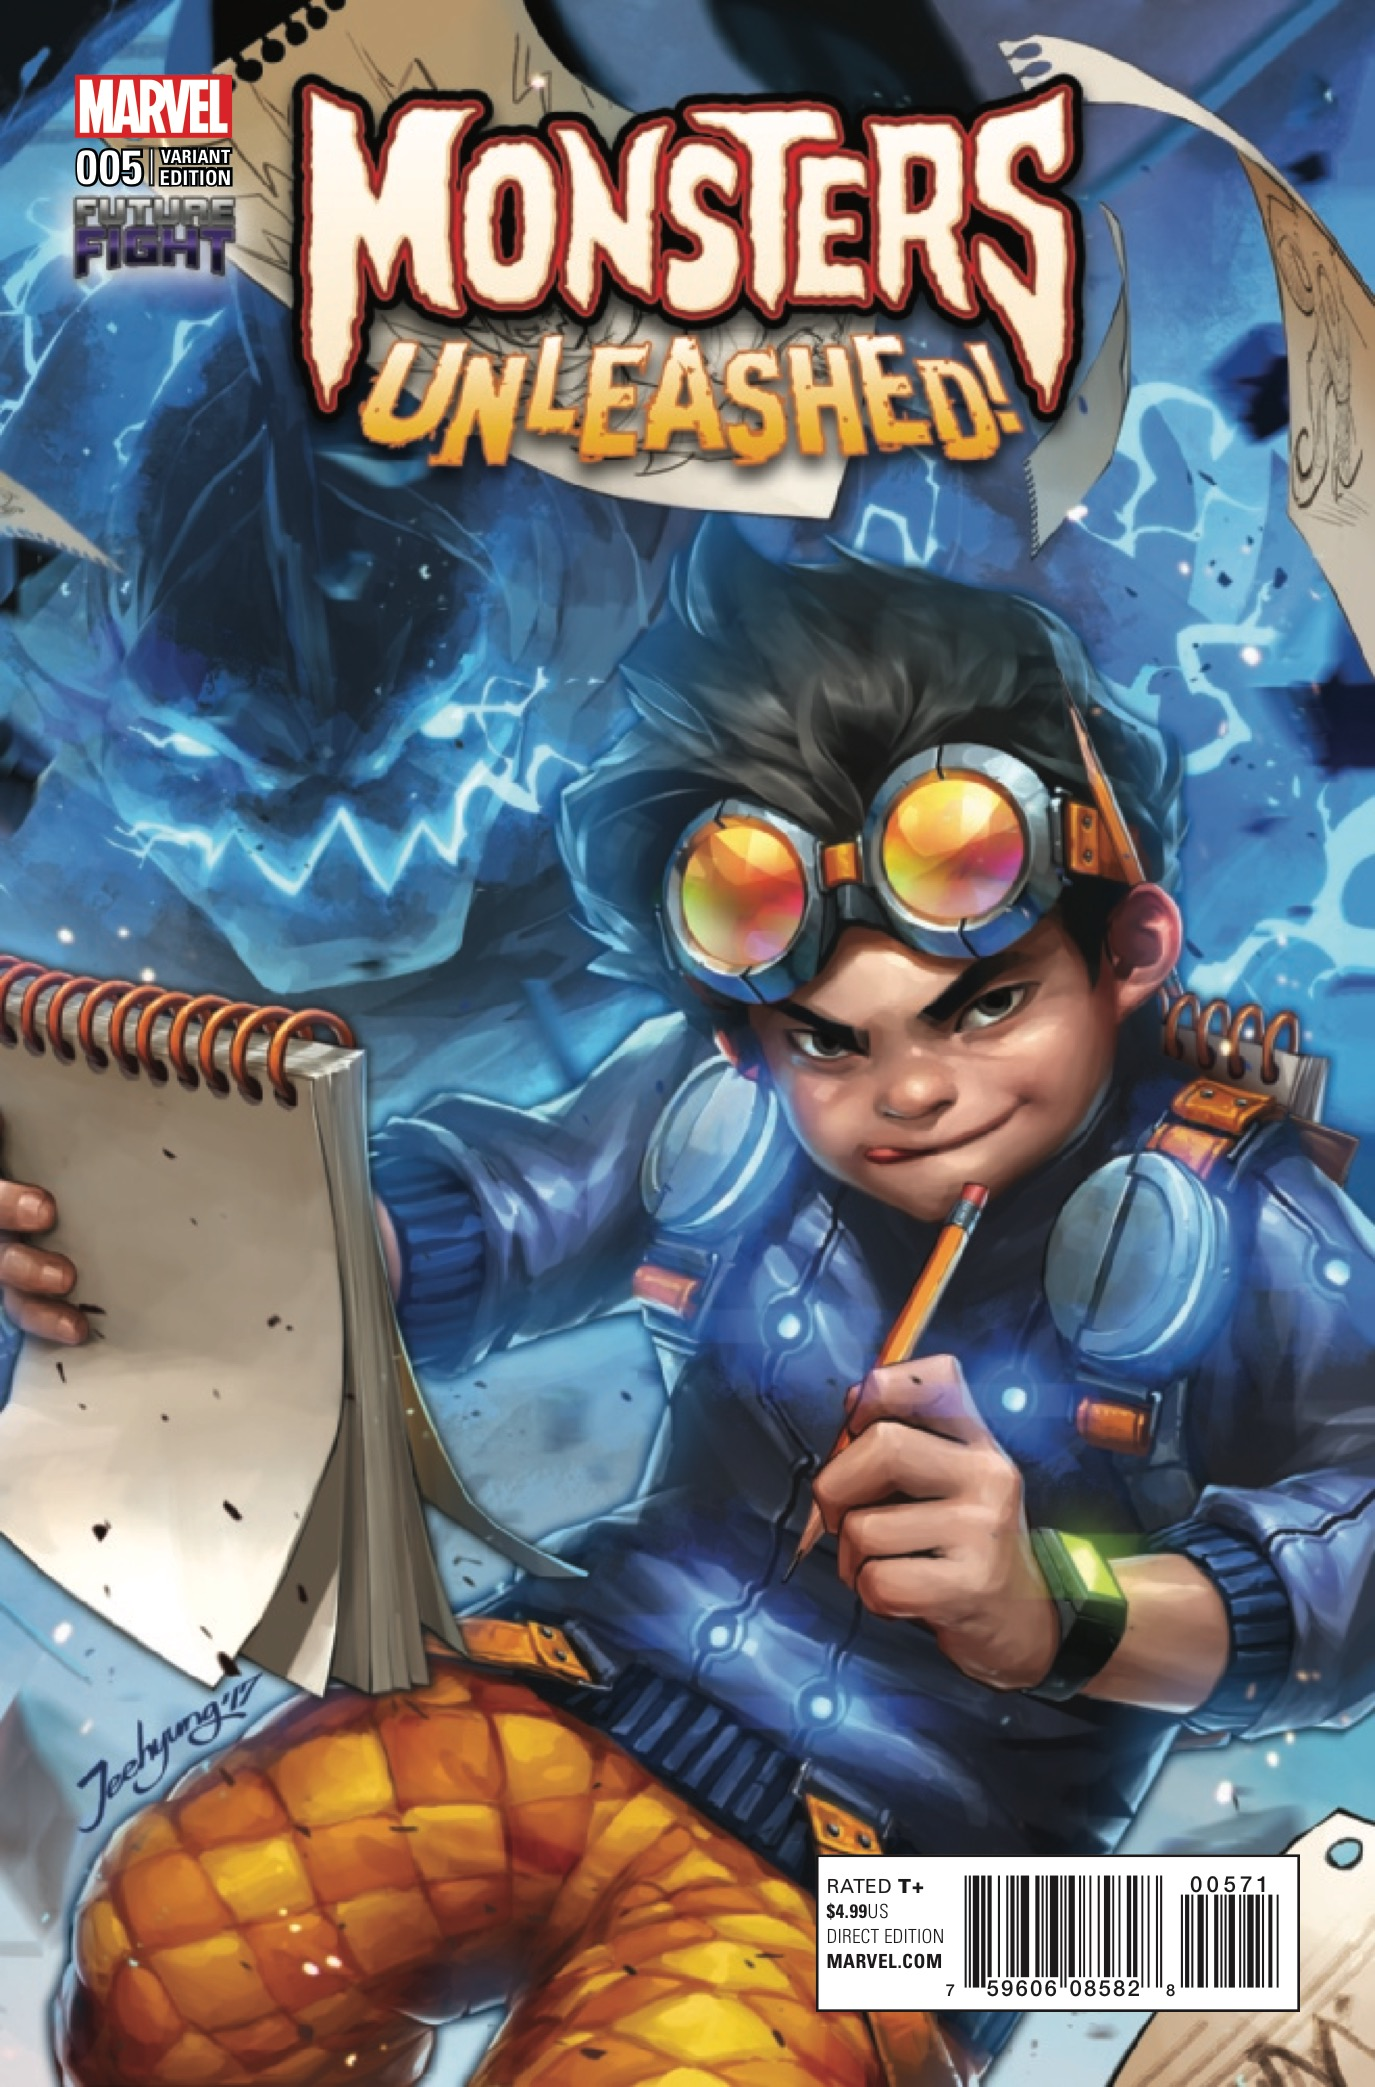 Monsters Unleashed #5 Review